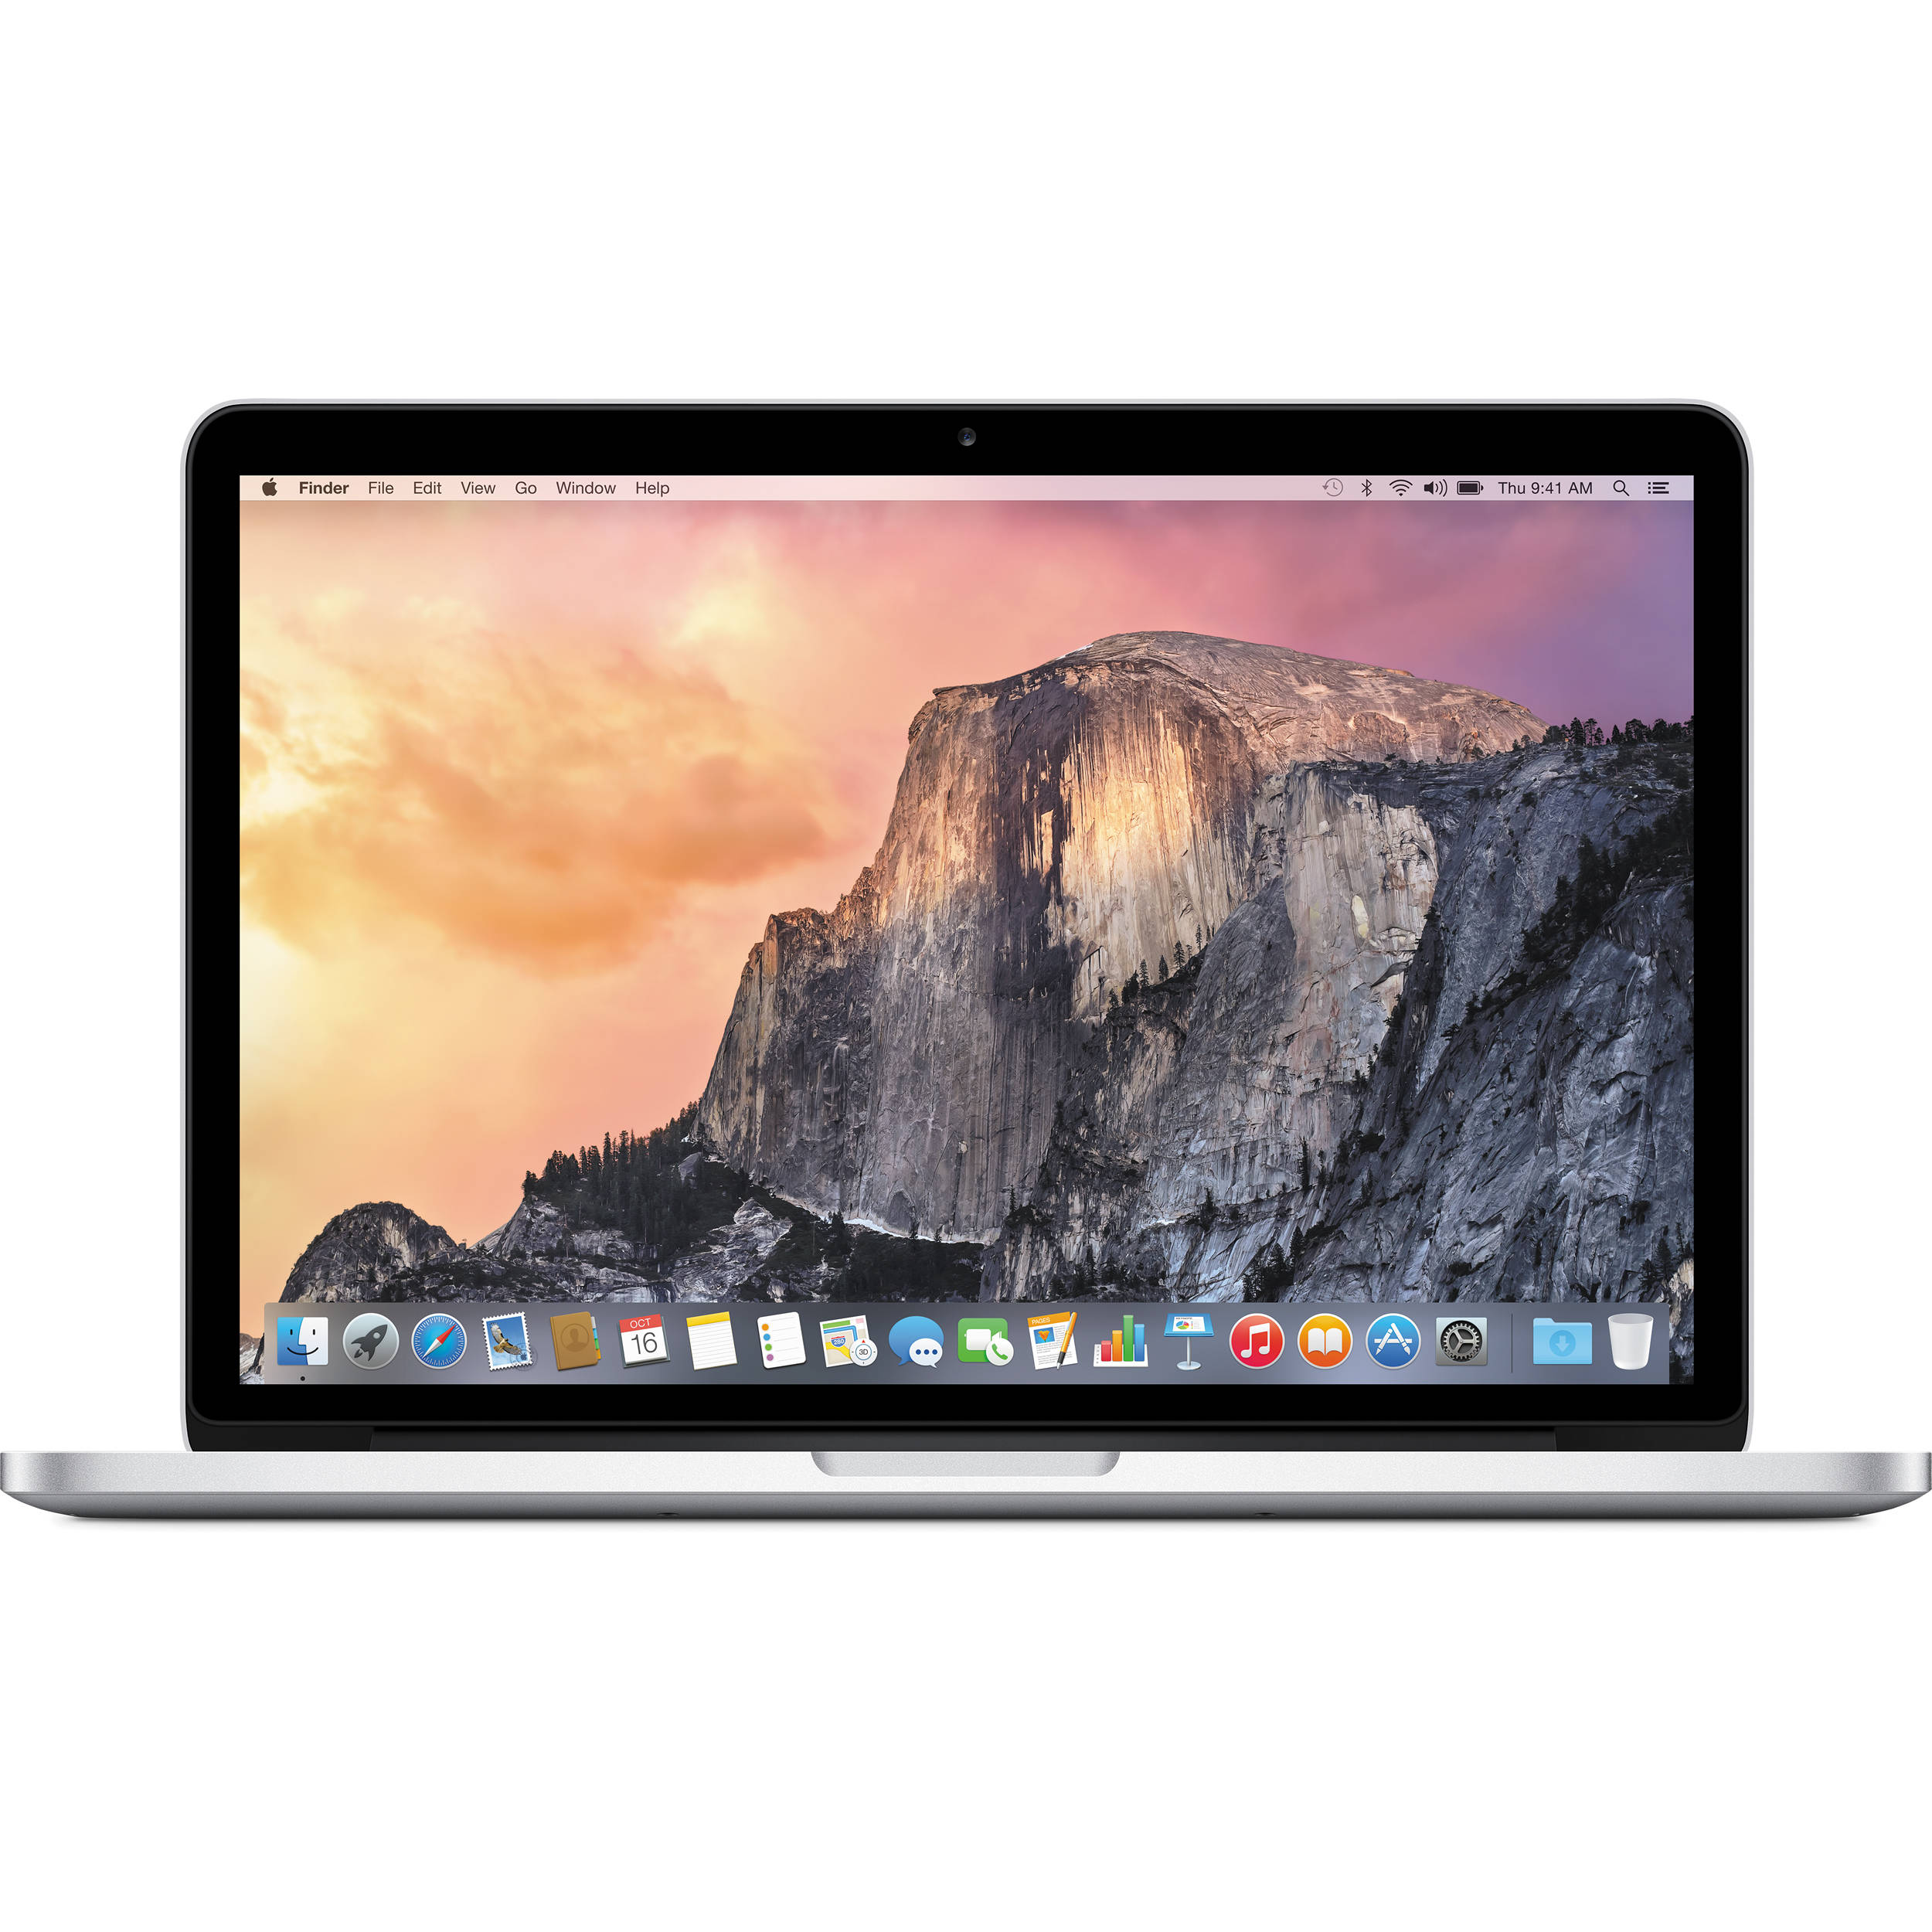 Apple 133 Macbook Pro Laptop Computer Z0qm Mf8405 Bh Electronic Circuit Design Software Mac Os X With Retina Display Early